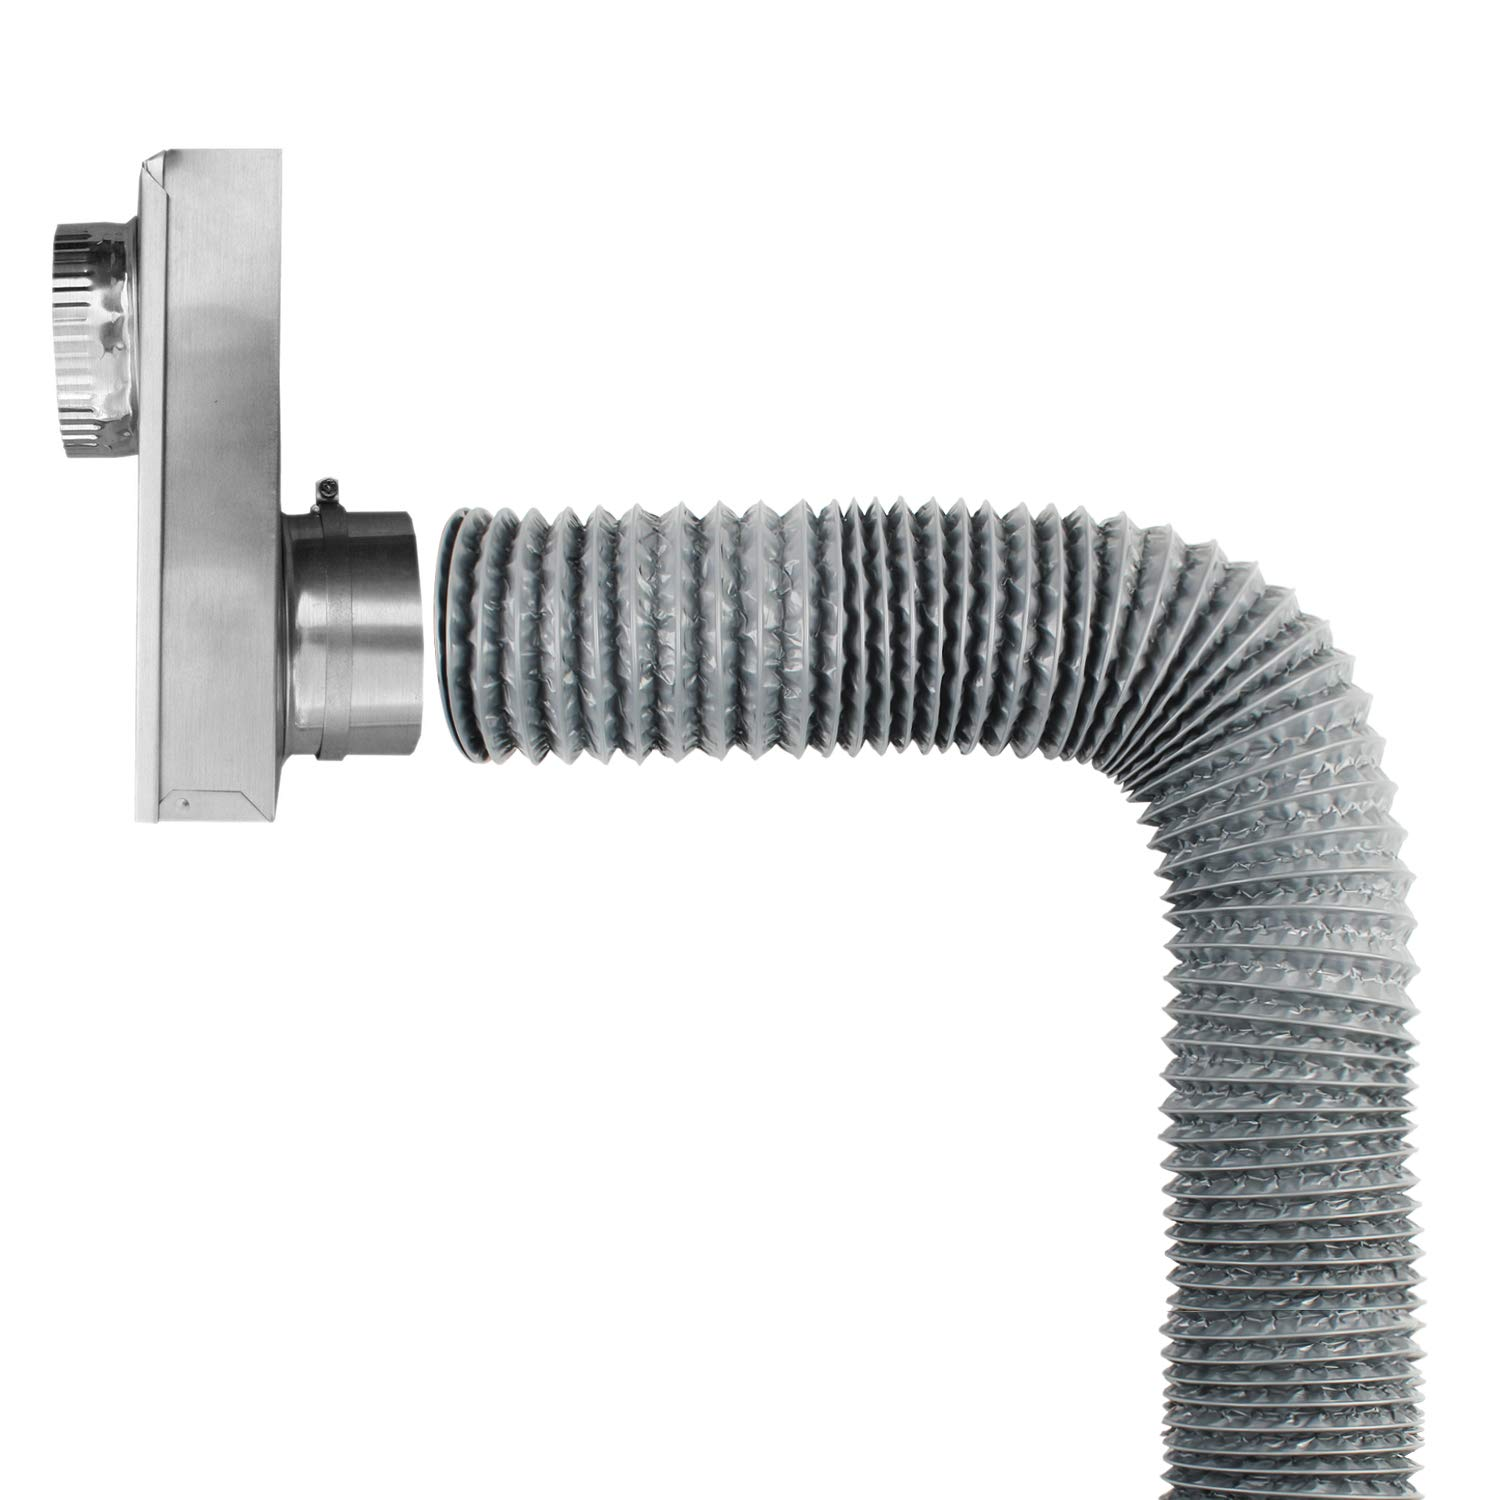 Air Duct Eau Gray Flexible 4-Layers Aluminum Dryer Vent Tube Transition Duct Air Hose with 2 Screw Clamps Great for HVAC Duct Clothes Dryer Duct 5 Inch Duct Hose by 16 Feet